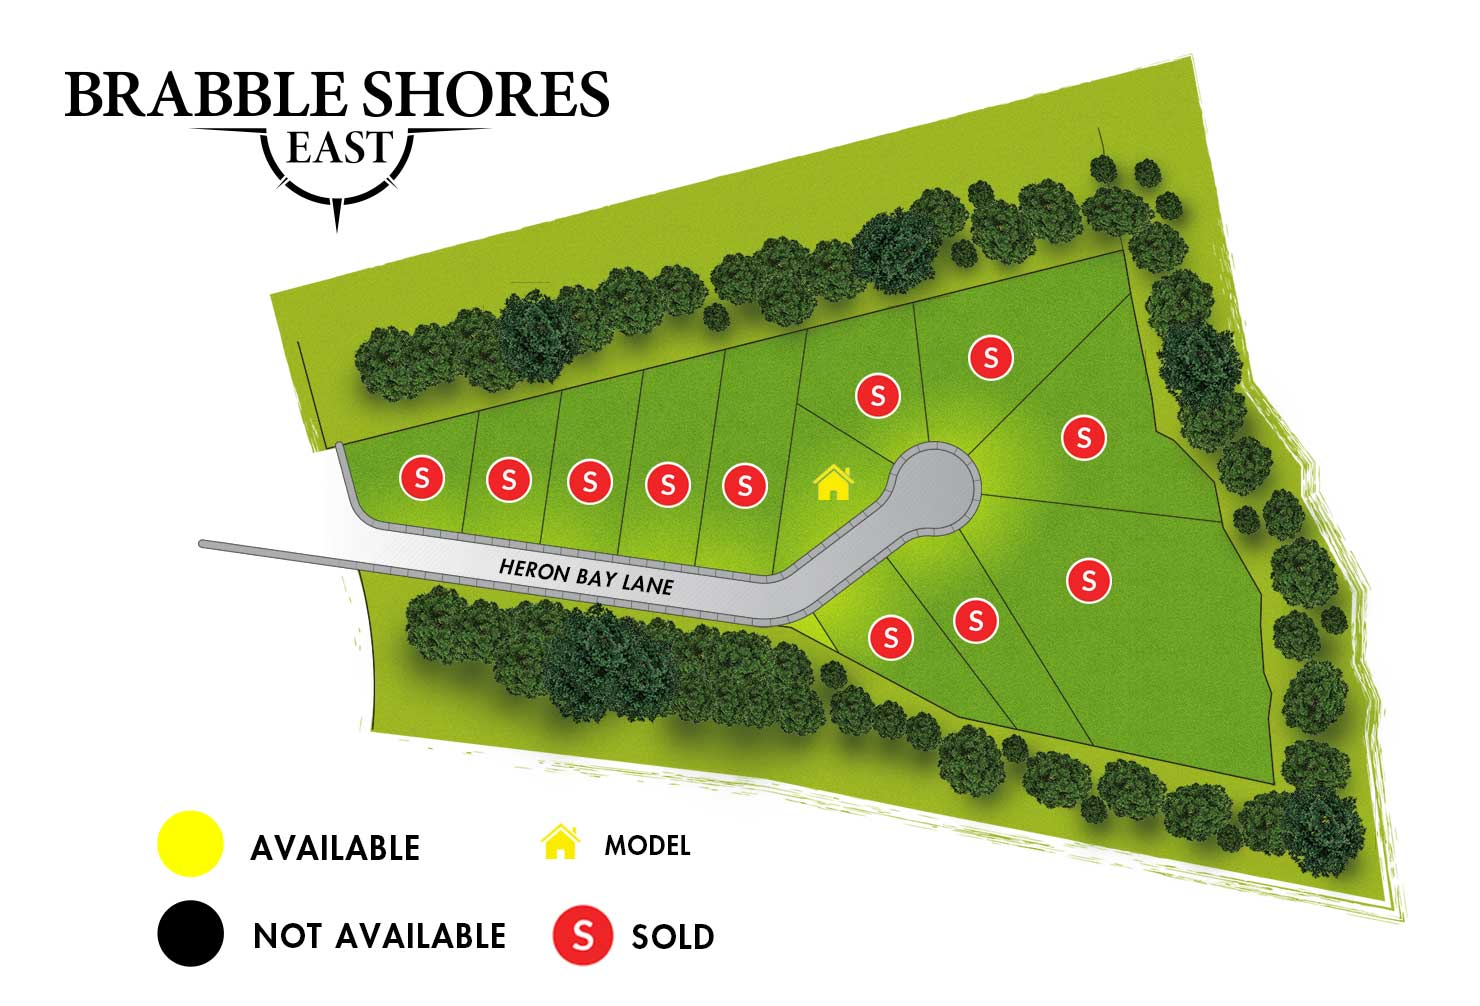 Brabble Shores Updated Map